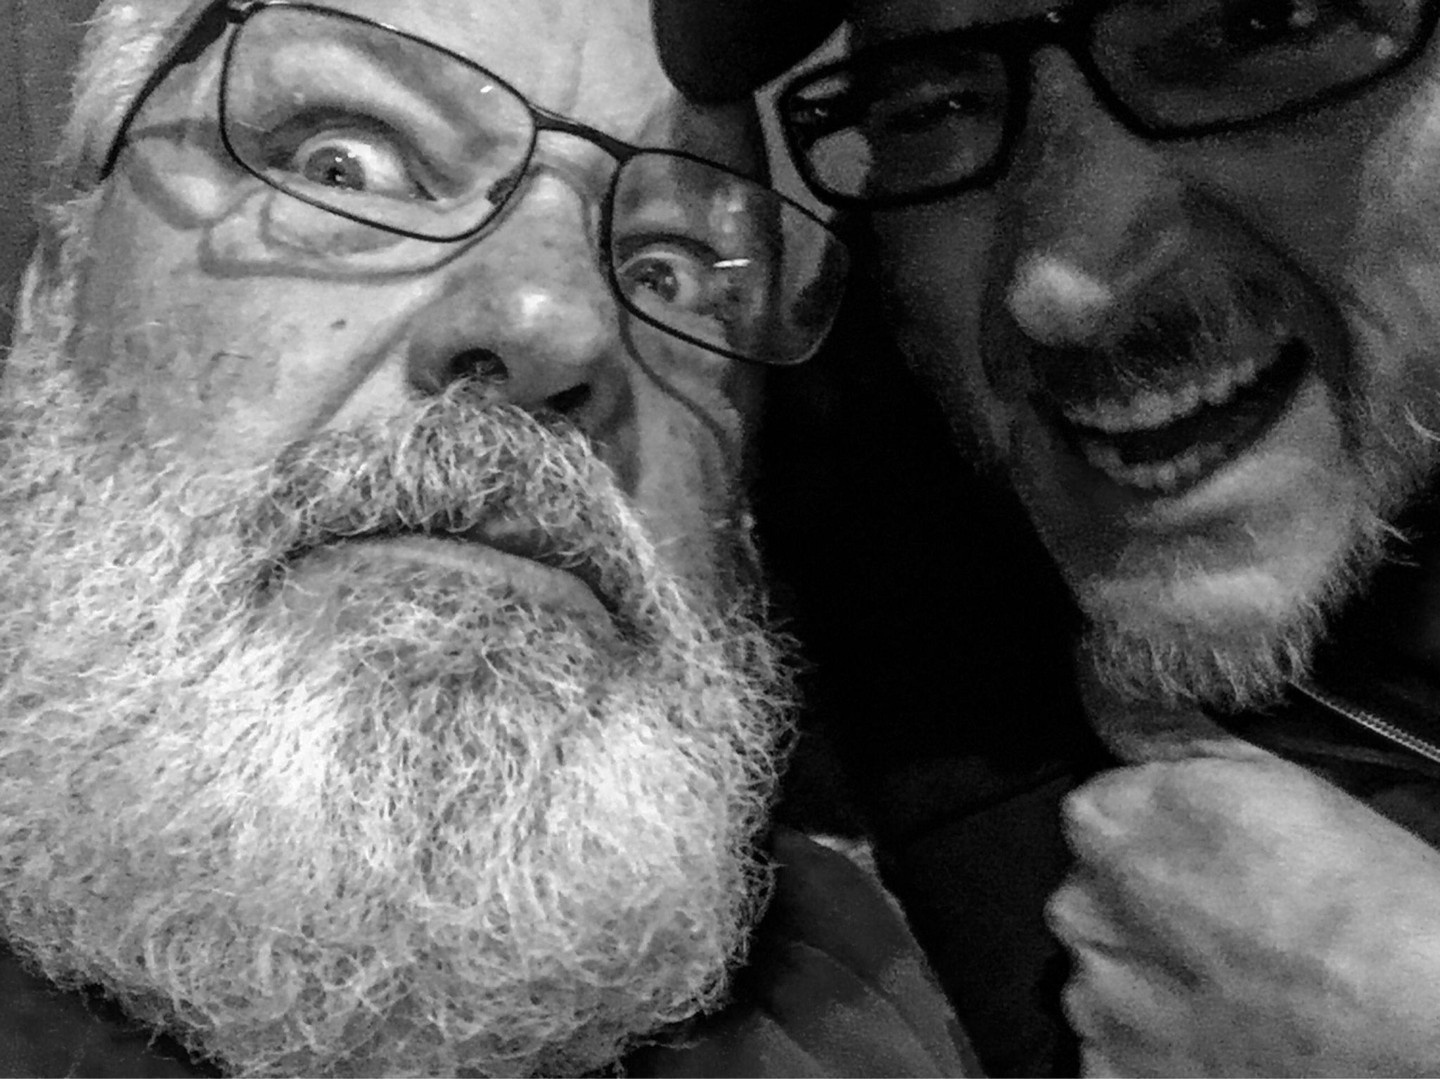 a closeup of Kyle Gass and Nick Ramirez in black and white